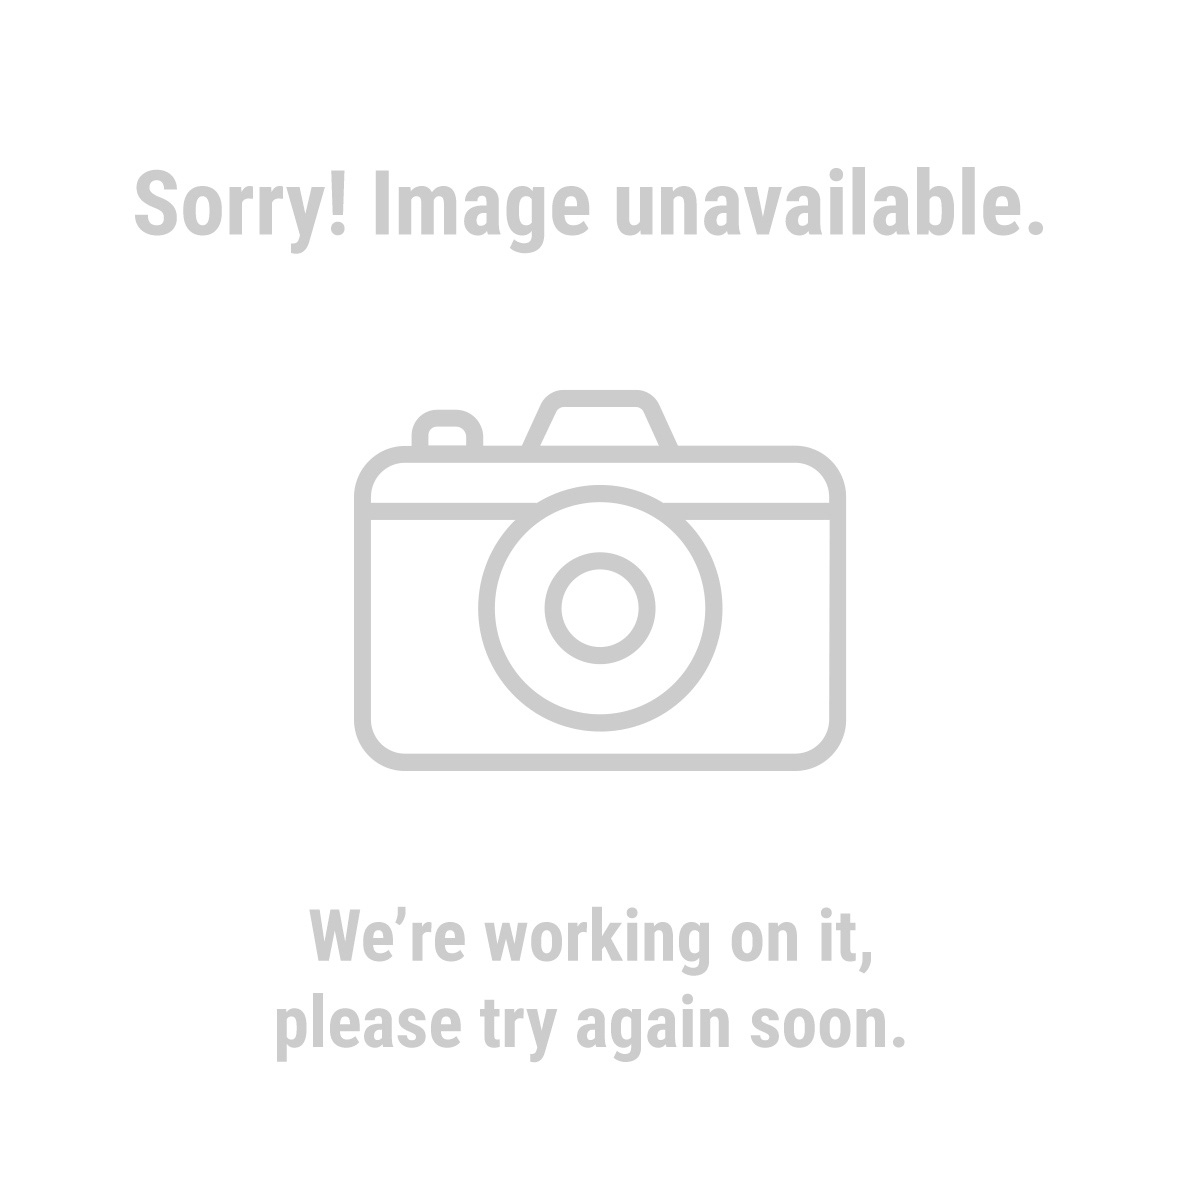 Western Safety Gloves 68307 Mechanics Gloves, Medium